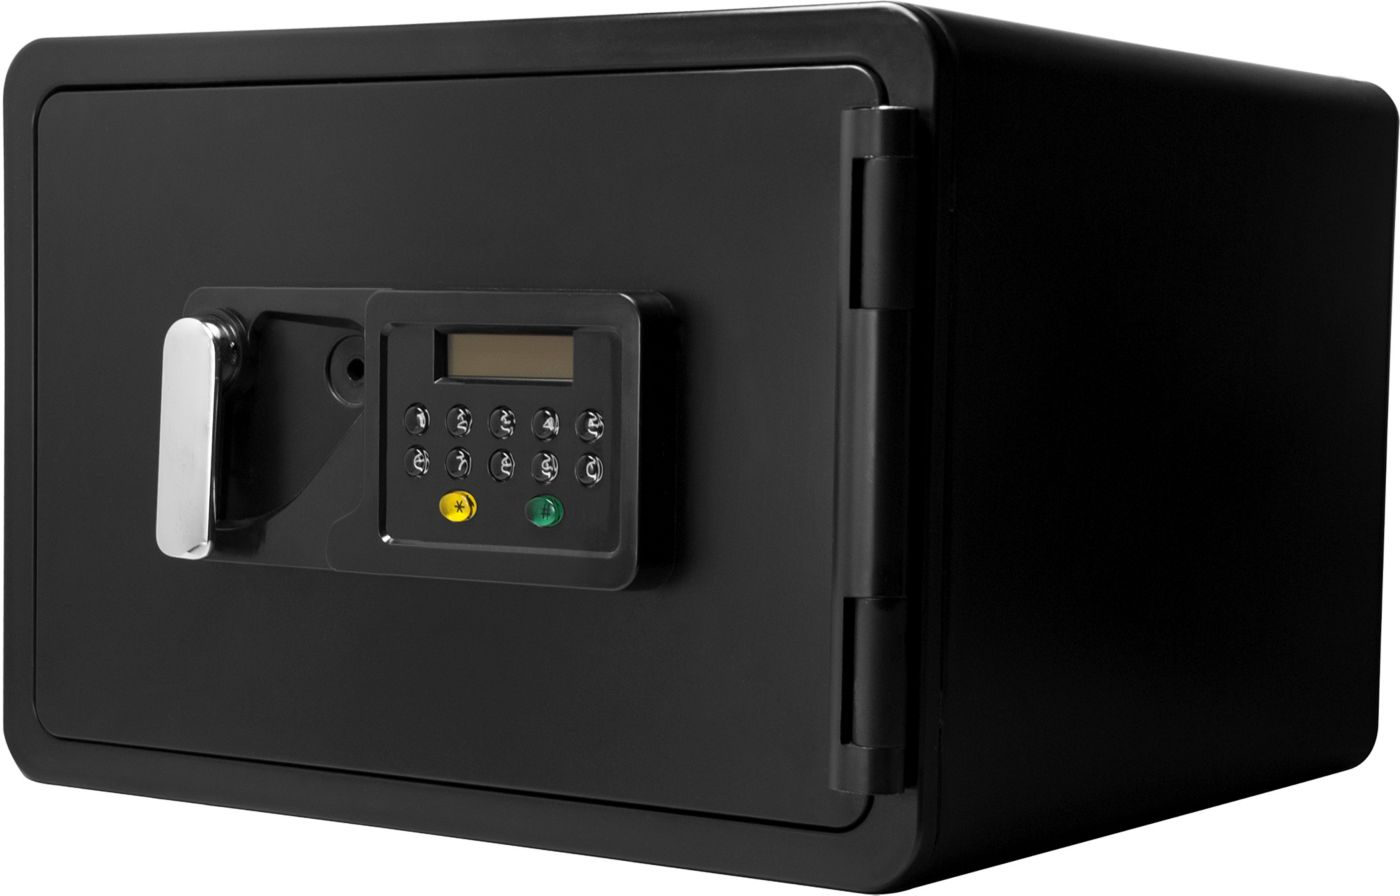 Barska Fireproof Safe with Digital Keypad